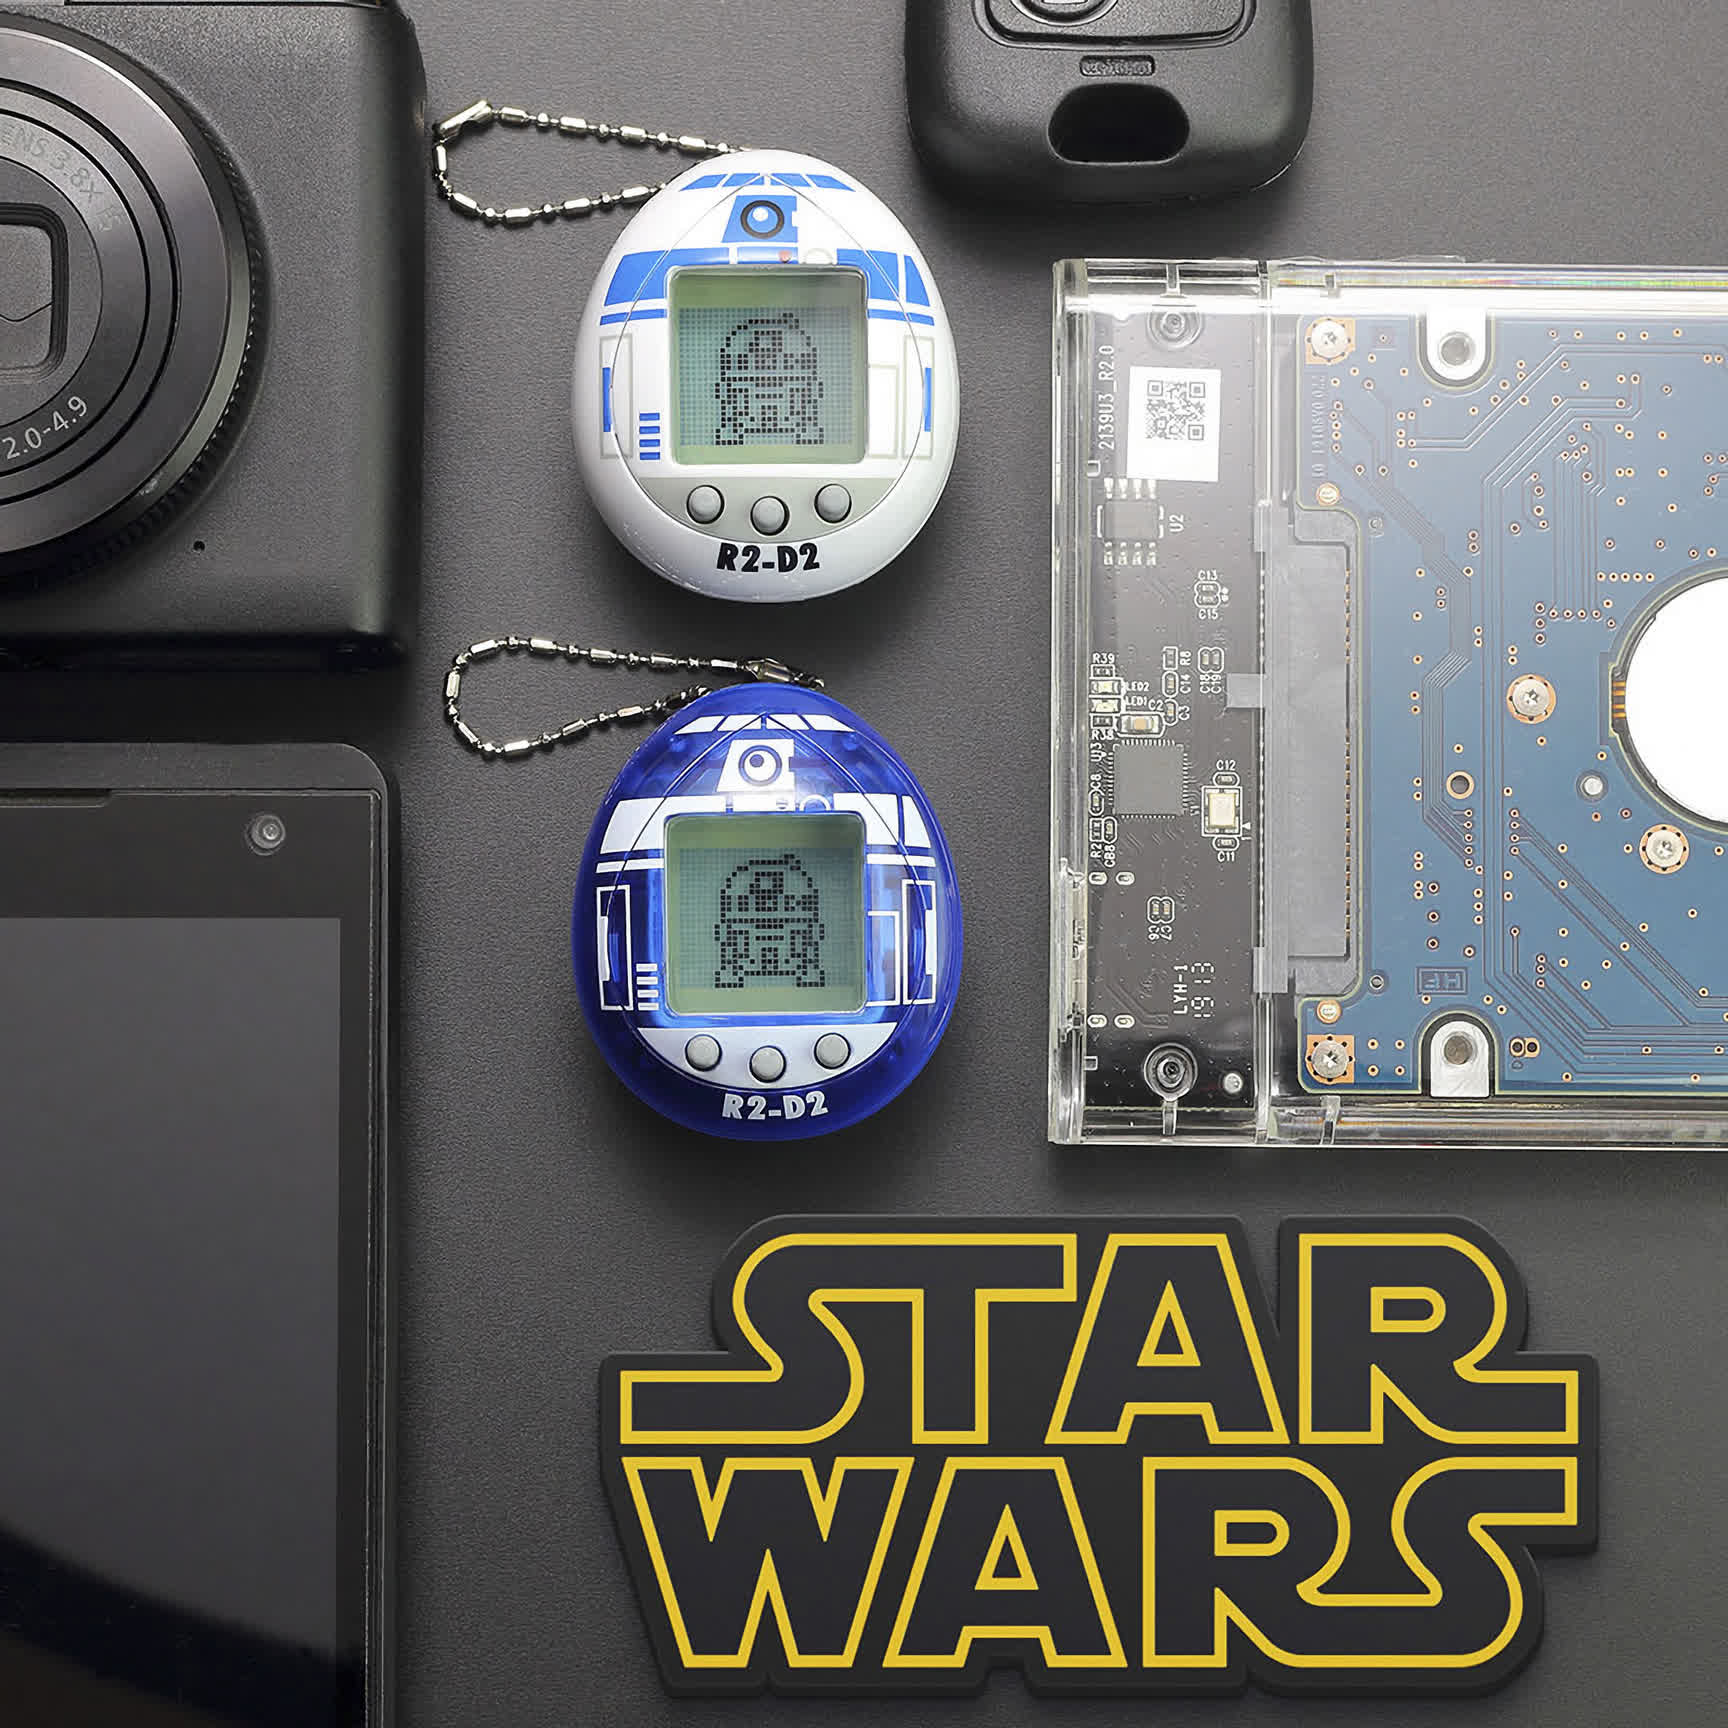 The first Star Wars Tamagotchi lets you take care of a digital version of R2-D2